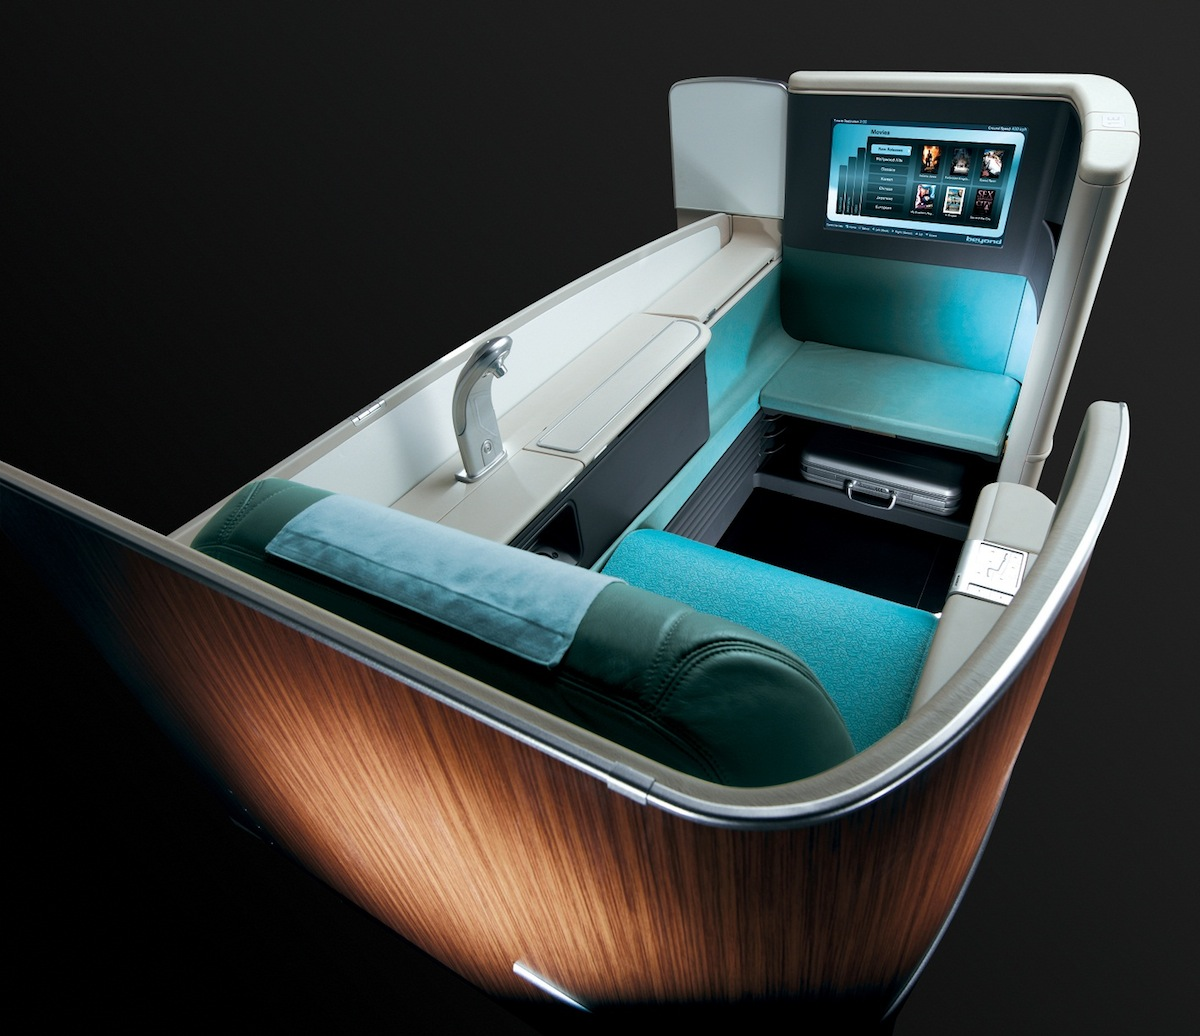 The flight will be equipped with Kosmo Suite in Business Class.